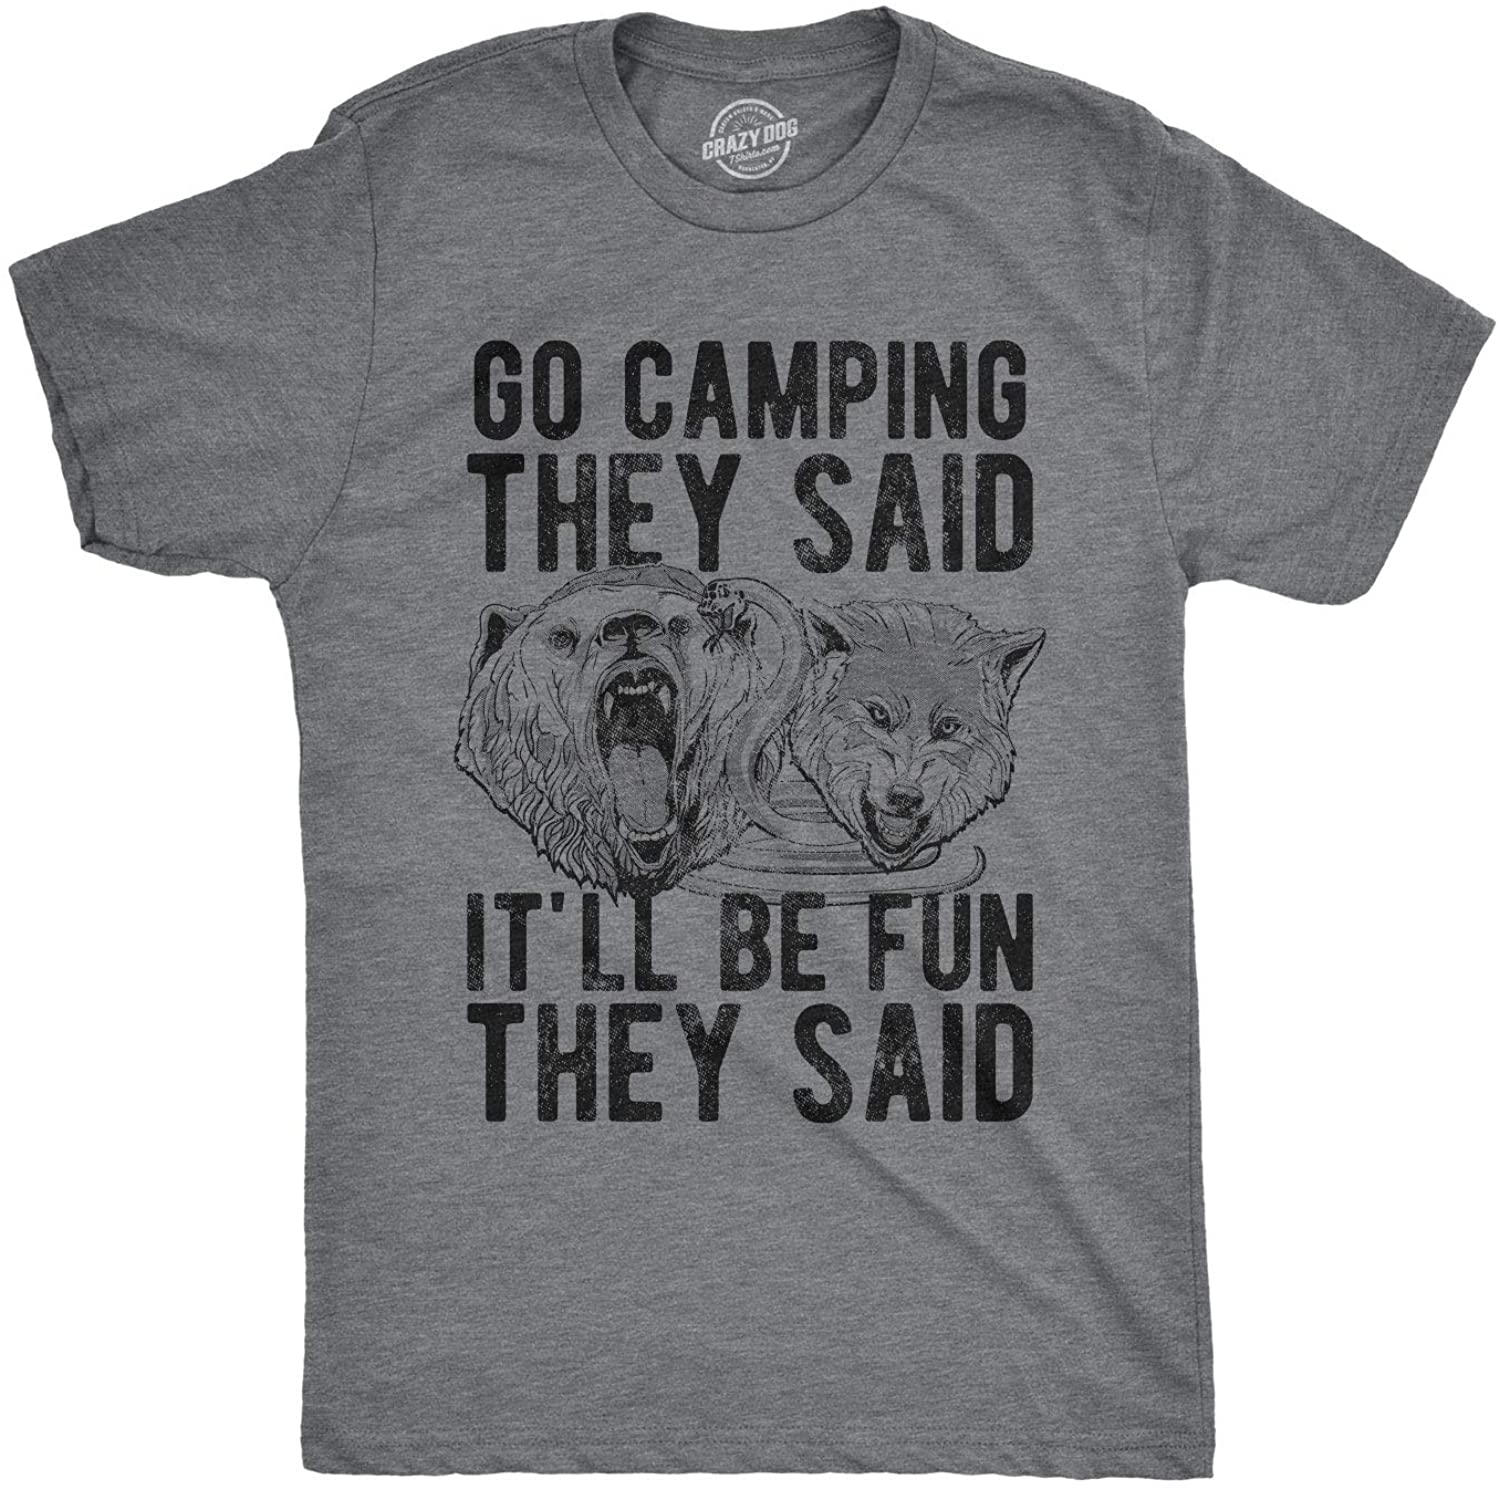 Crazy Dog T-Shirts Mens Go Camping They Said Itll Be Fun They Said Tshirt Funny Outdoors Tee for Guys